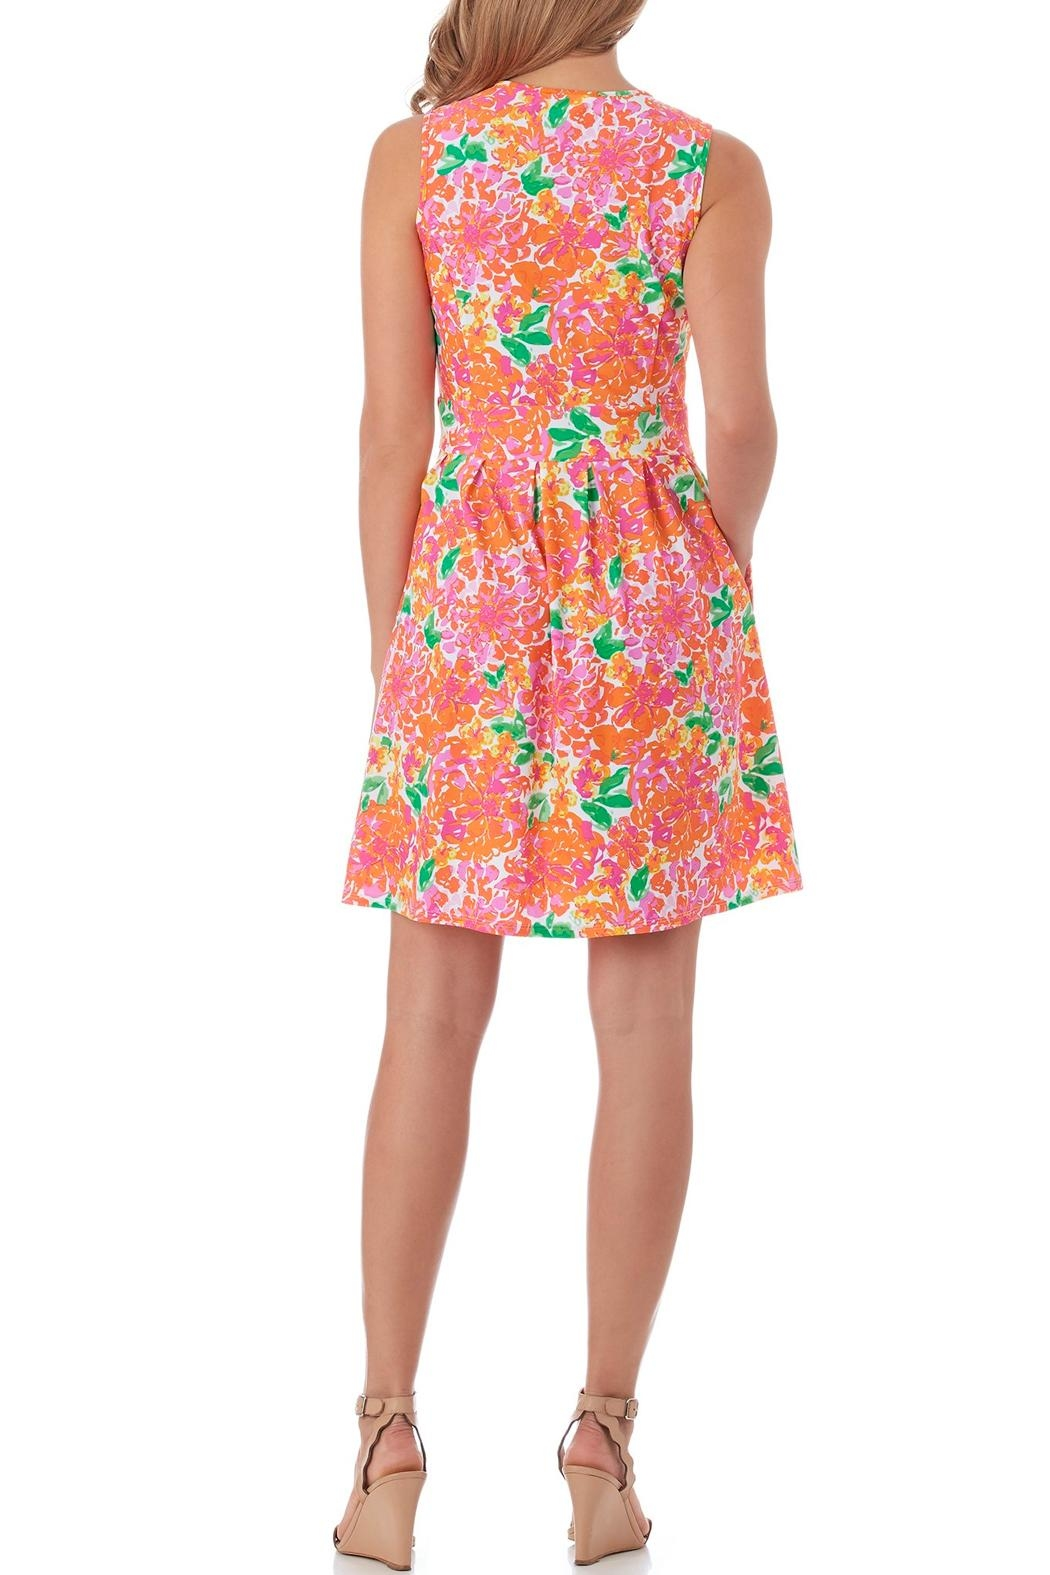 Jude Connally Julie Fit-n-Flare Dress - Front Full Image